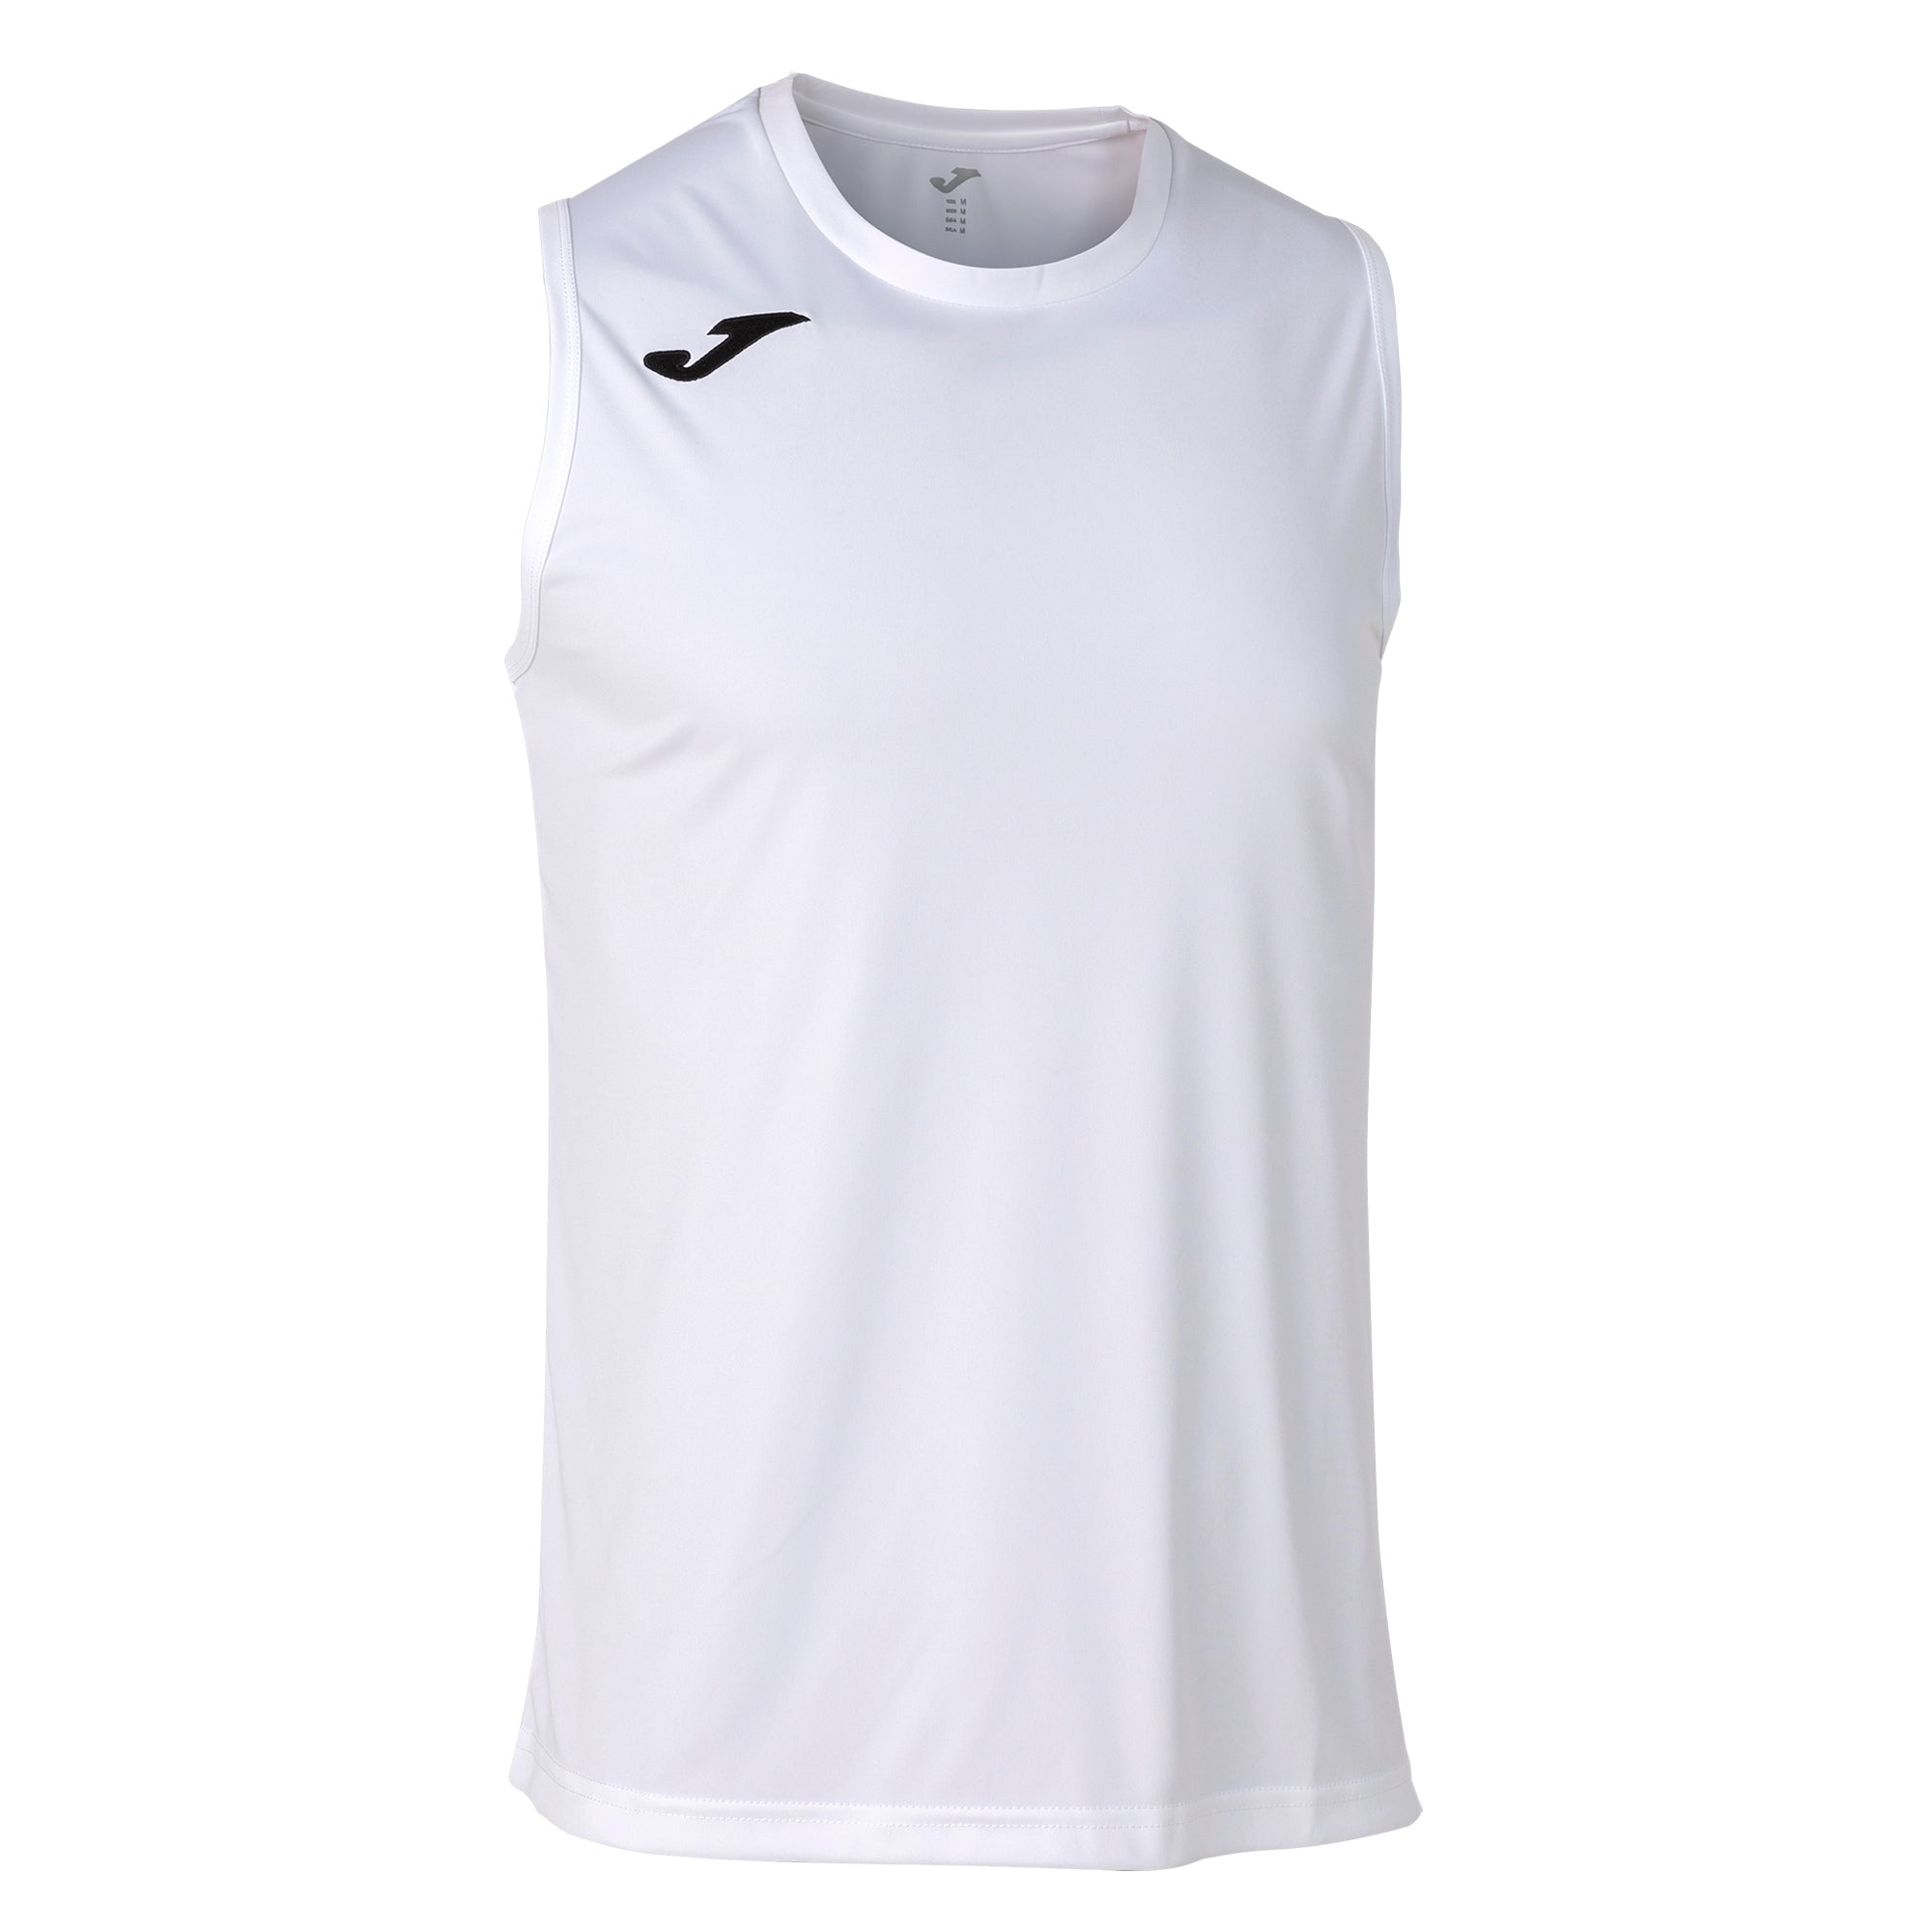 Teamwear - Joma Combi Sleeveless - White - JO-101660-200